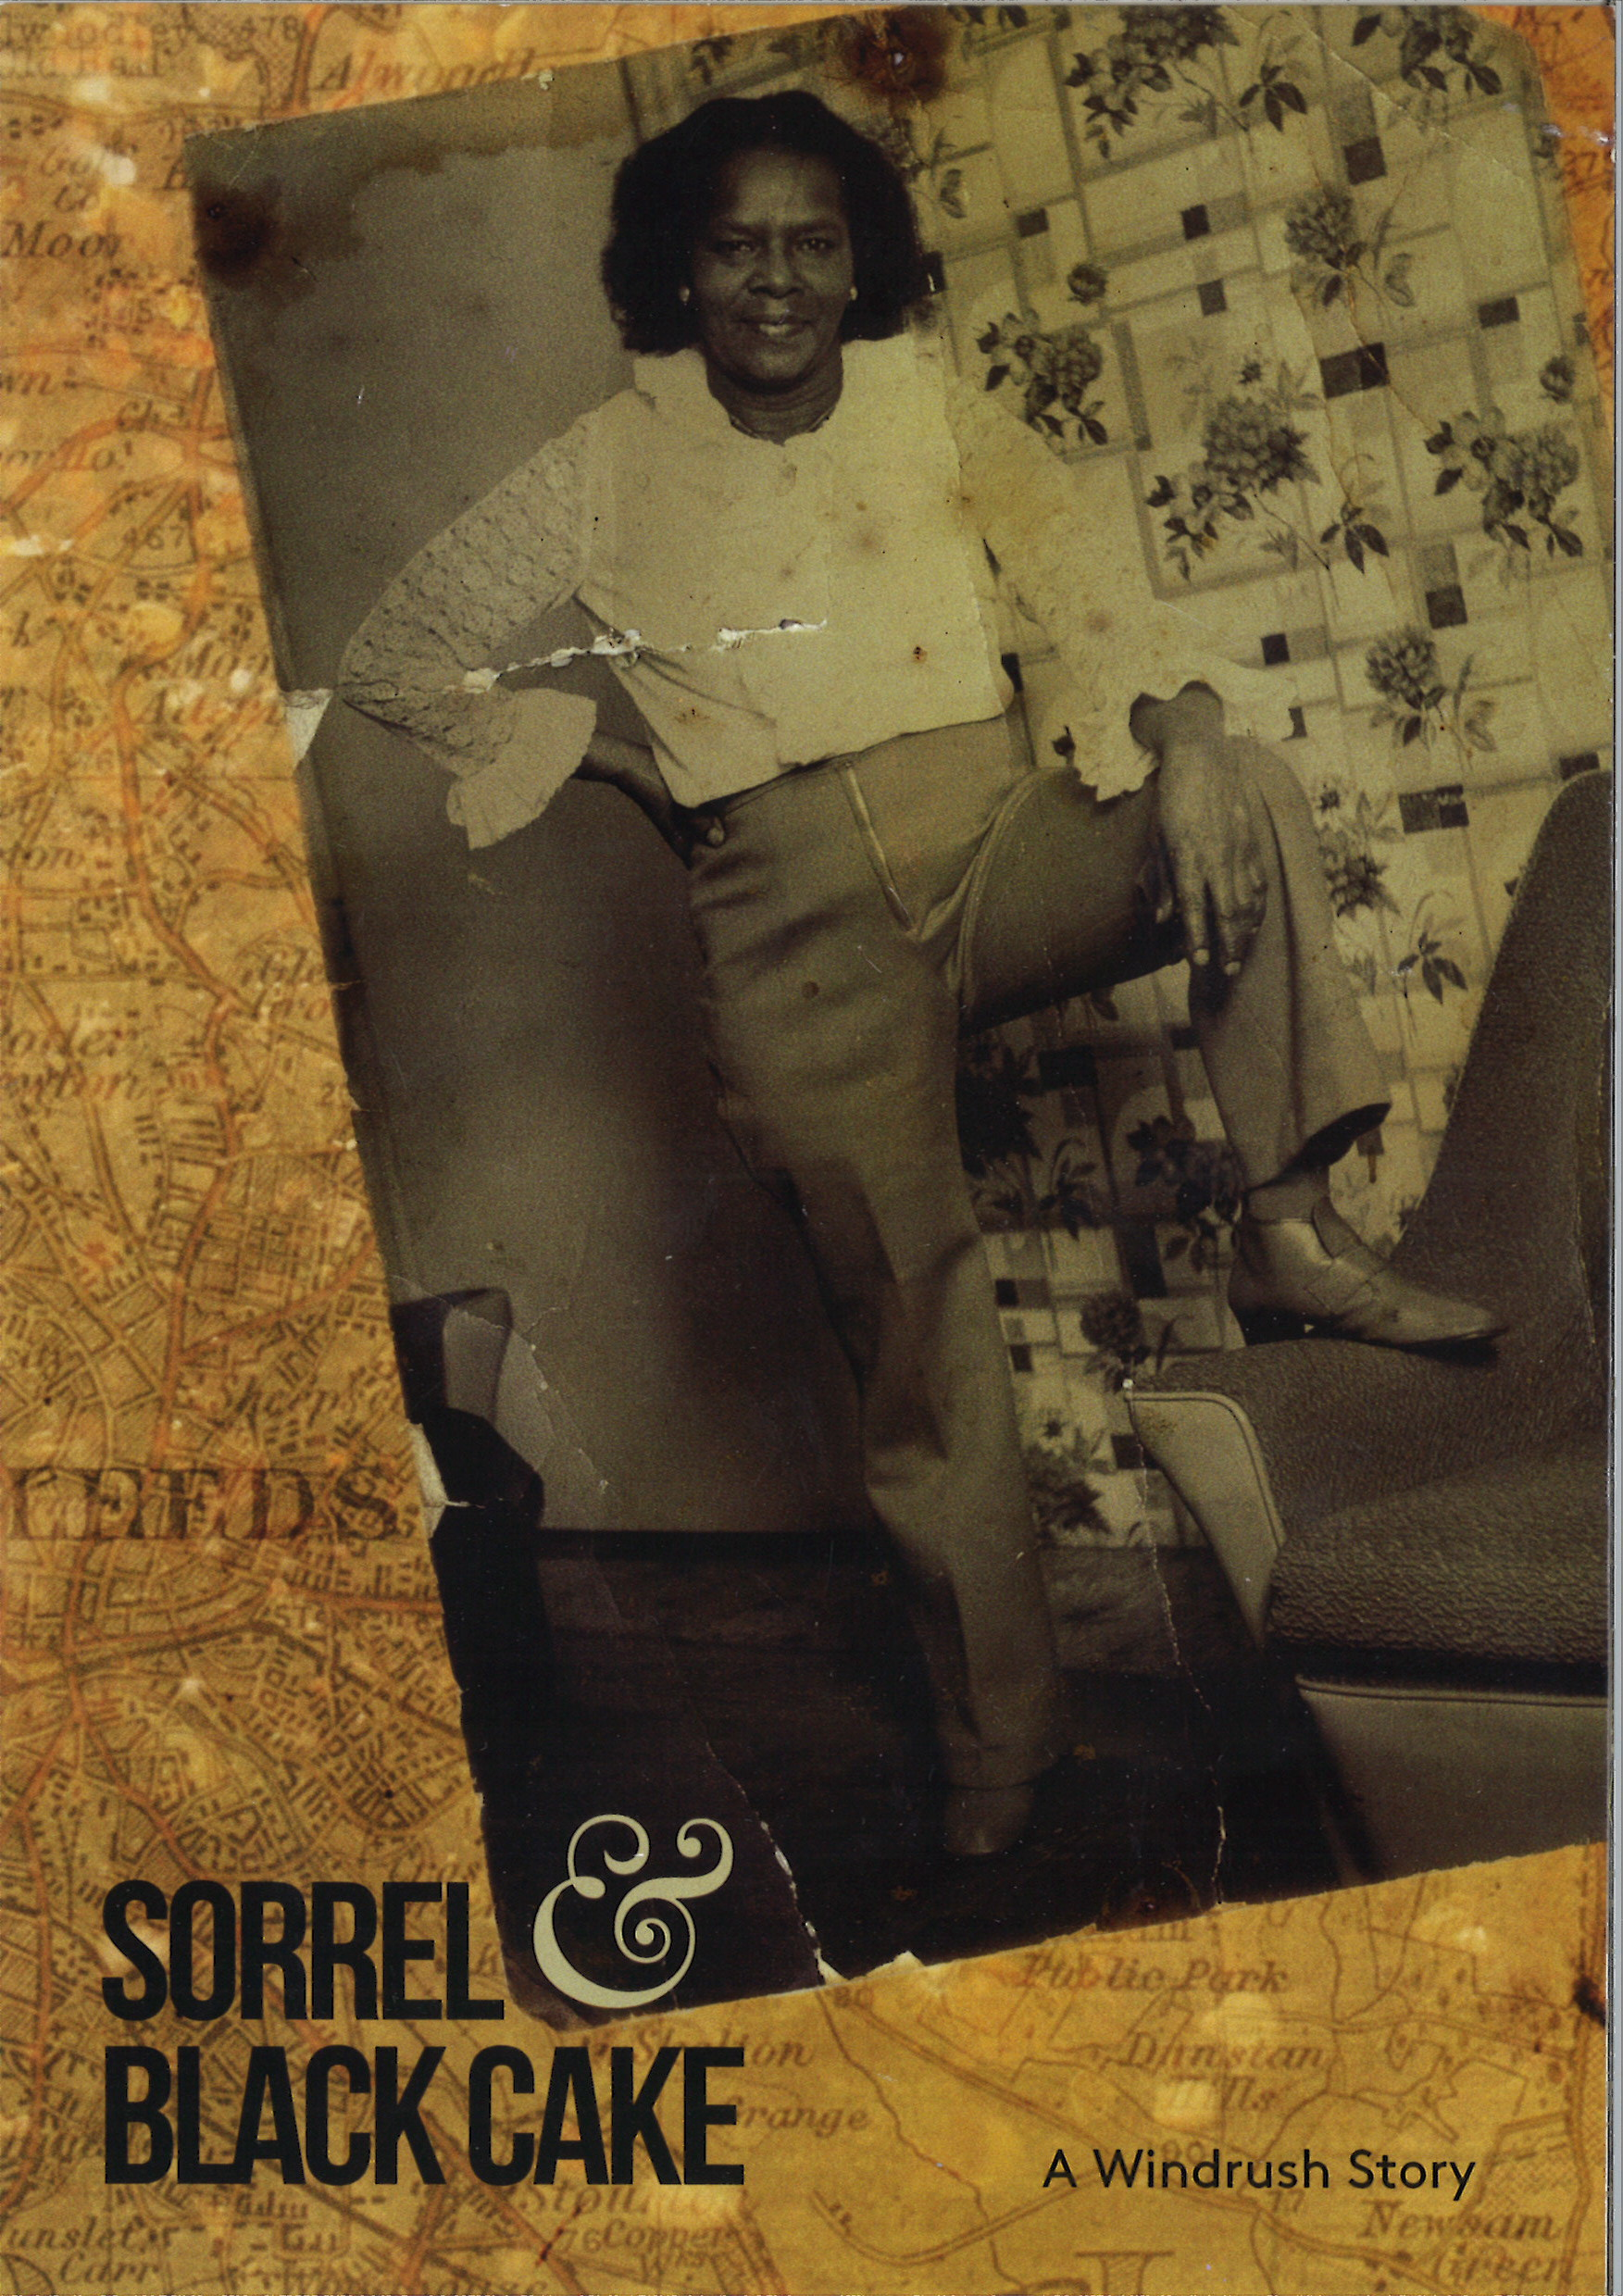 A5 flyer showing a black and white photograph of a lady of Carribean heritage standing with her foot on a sofa.